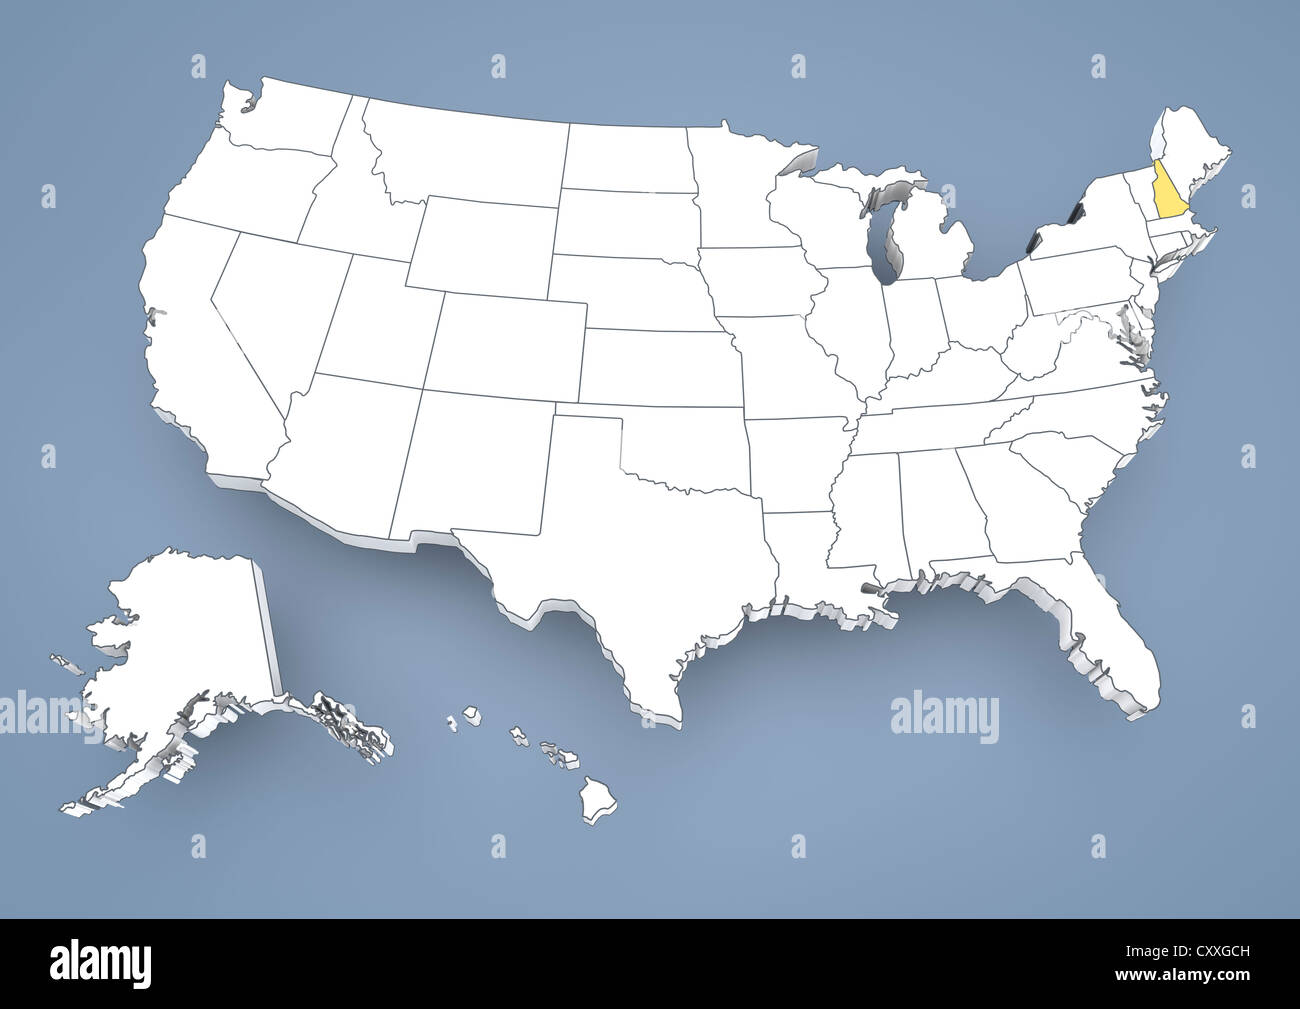 Nh Usa Map.New Hampshire Nh Highlighted On A Contour Map Of Usa United